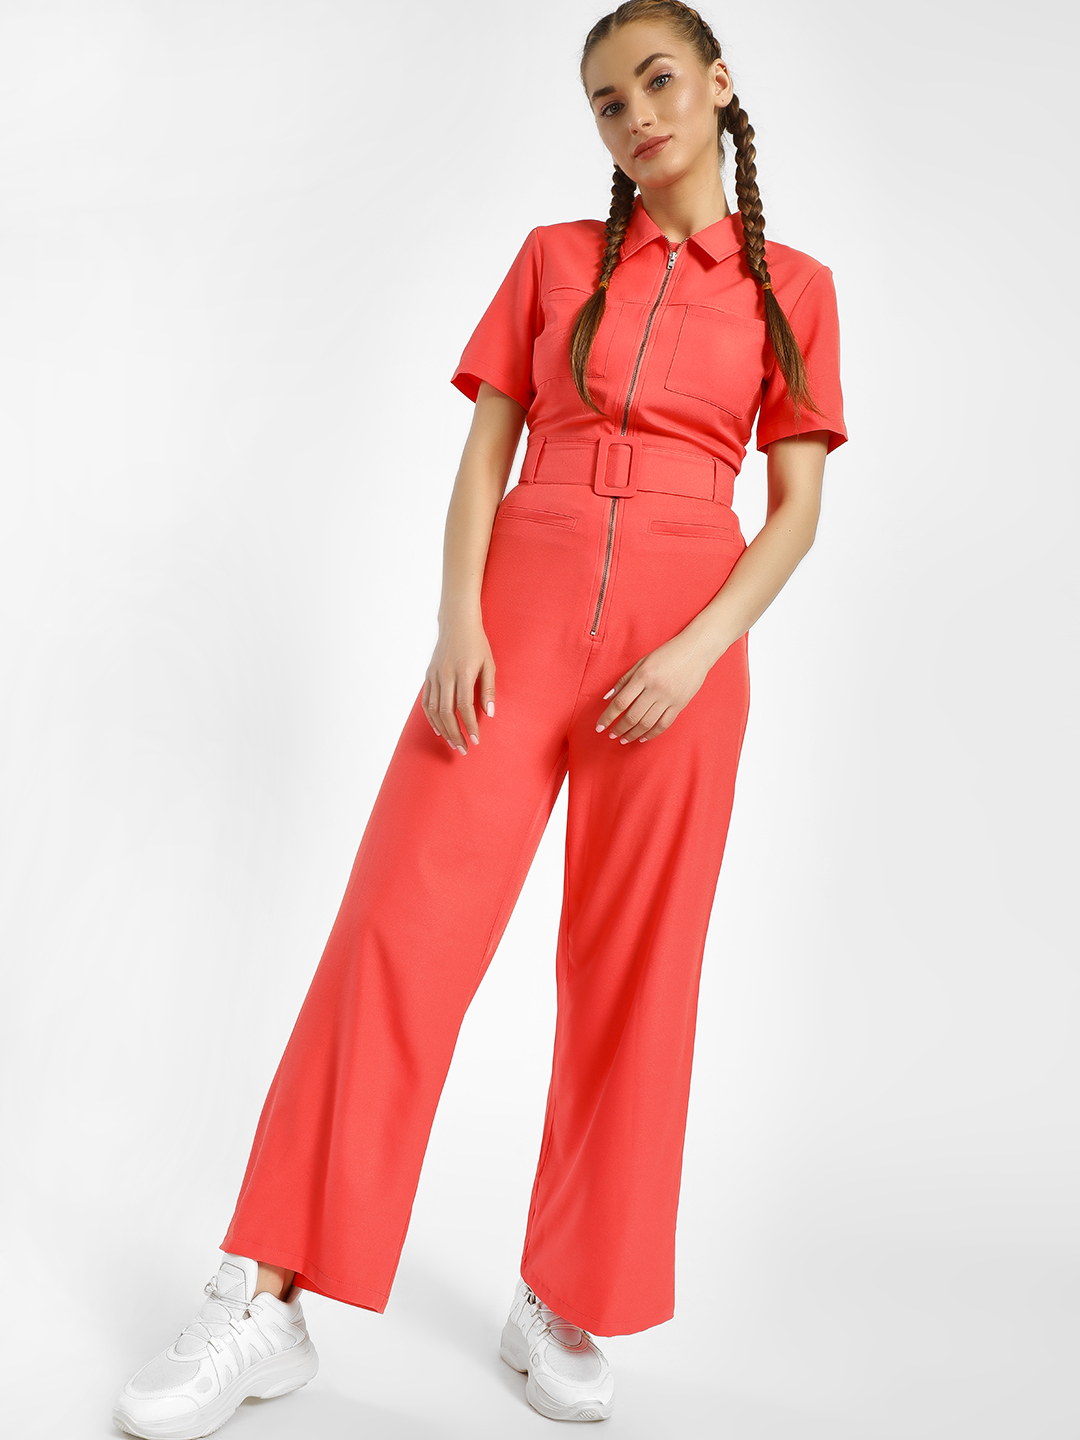 KOOVS Peach Zip-Up Collared Belted Jumpsuit 1